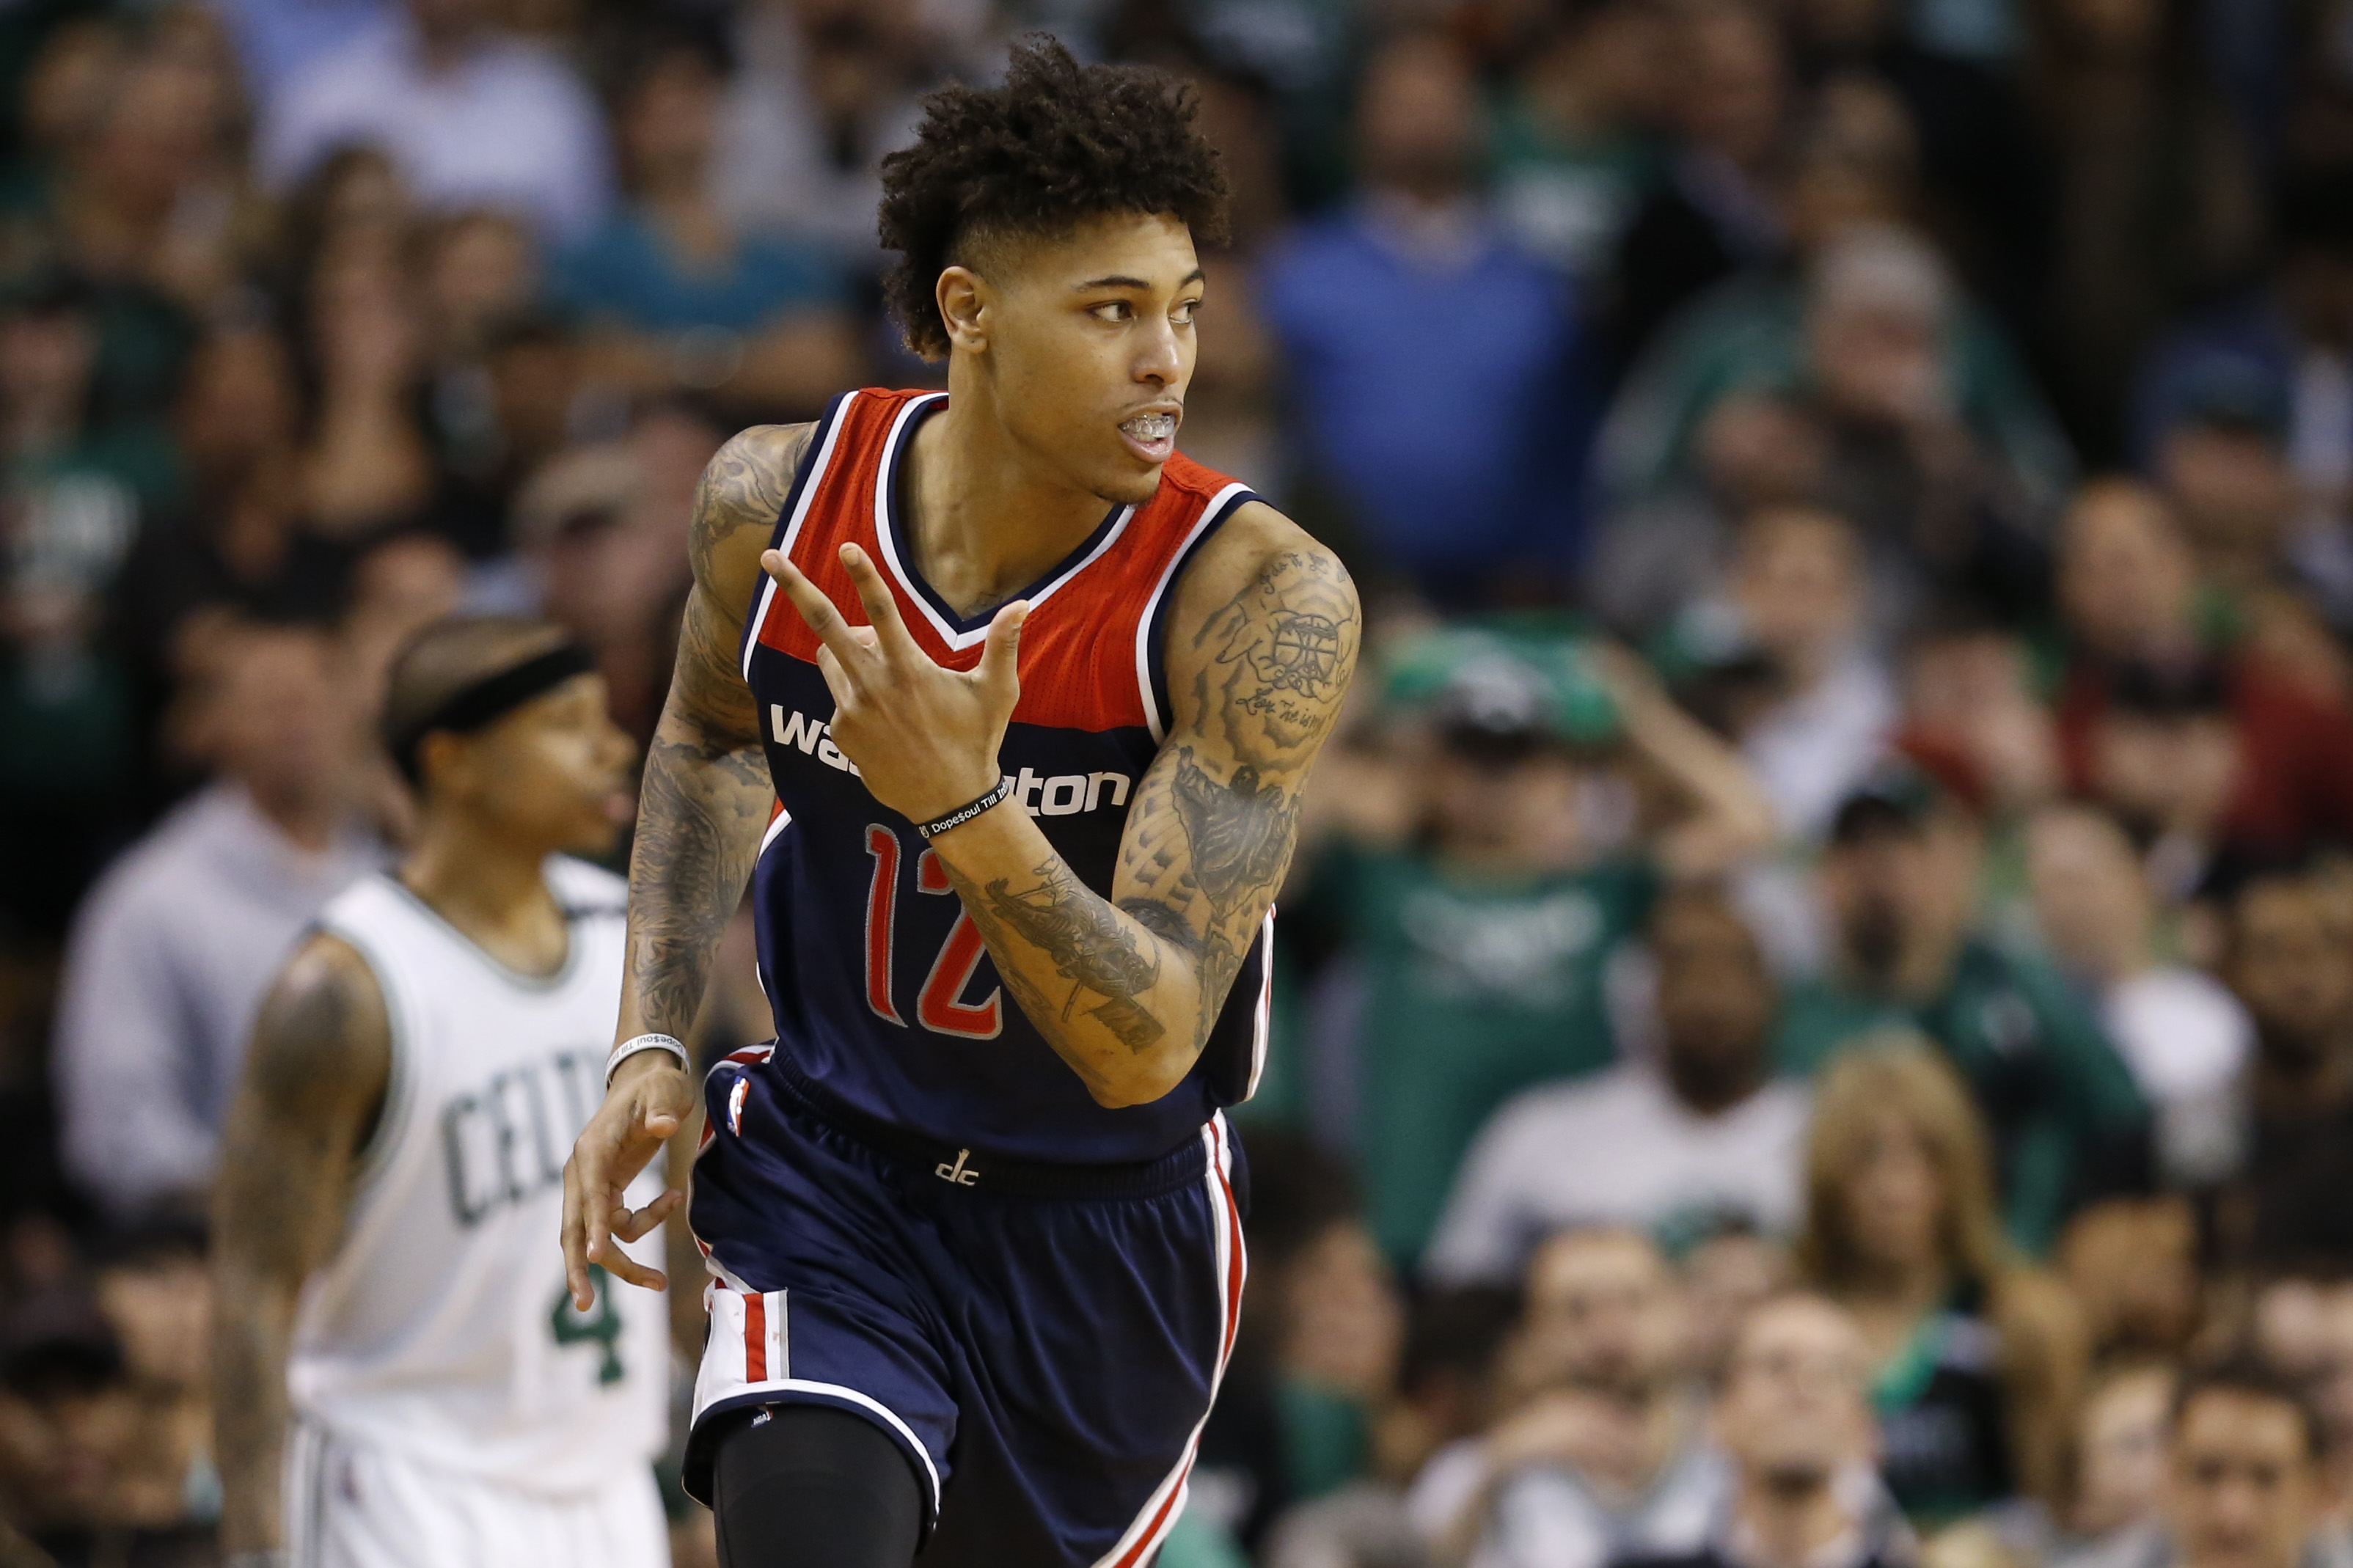 Washington Wizards: Kelly Oubre Jr. needs more minutes to prove himself